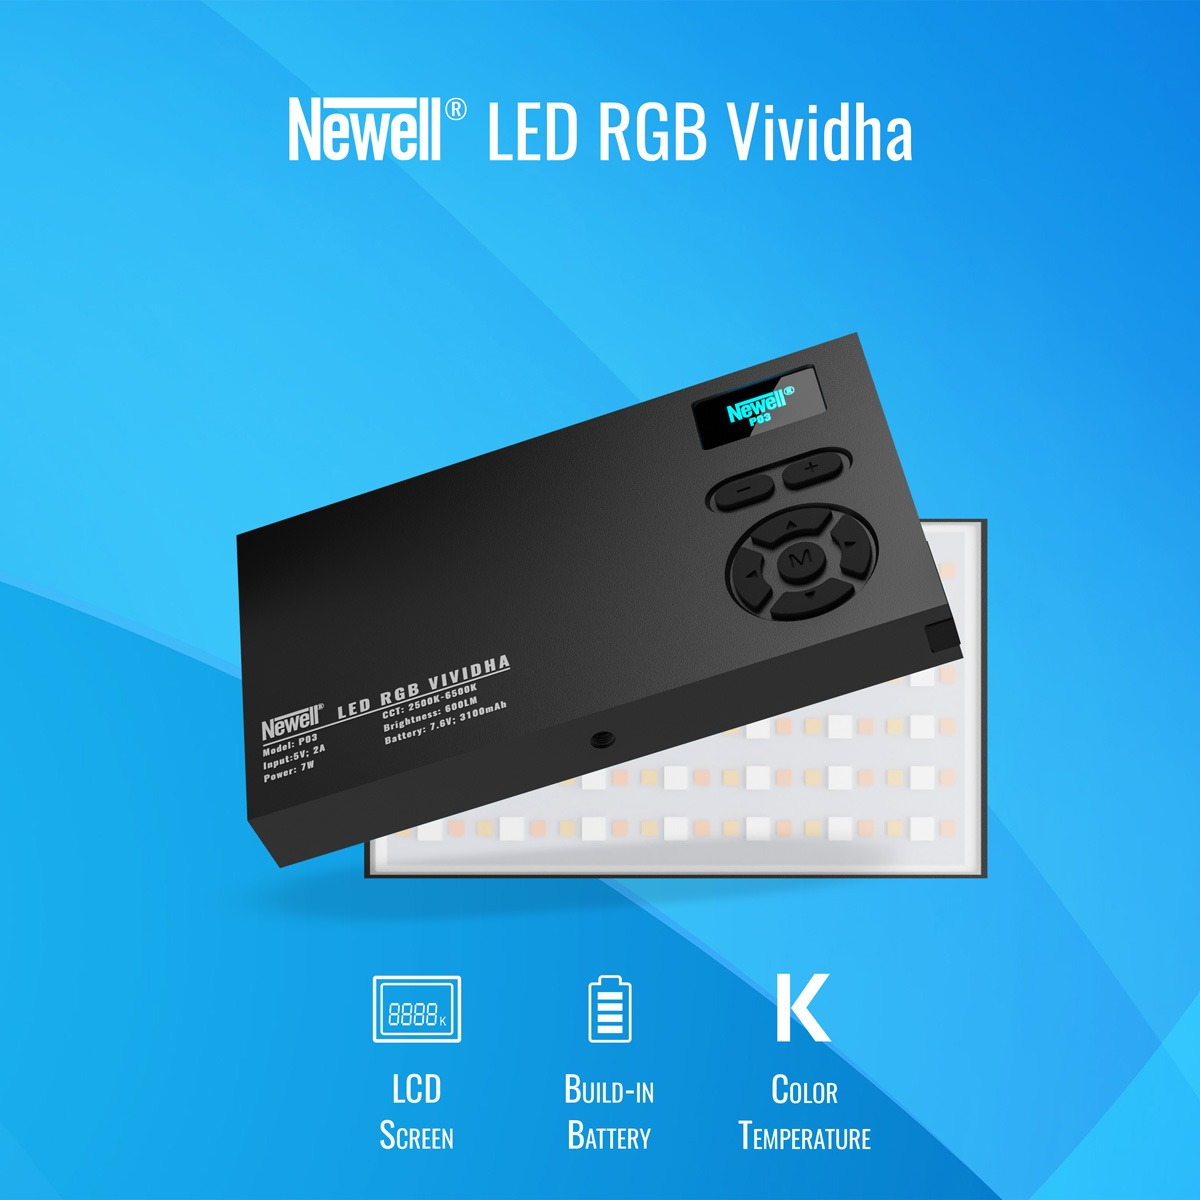 Vividha Newell RGB LED